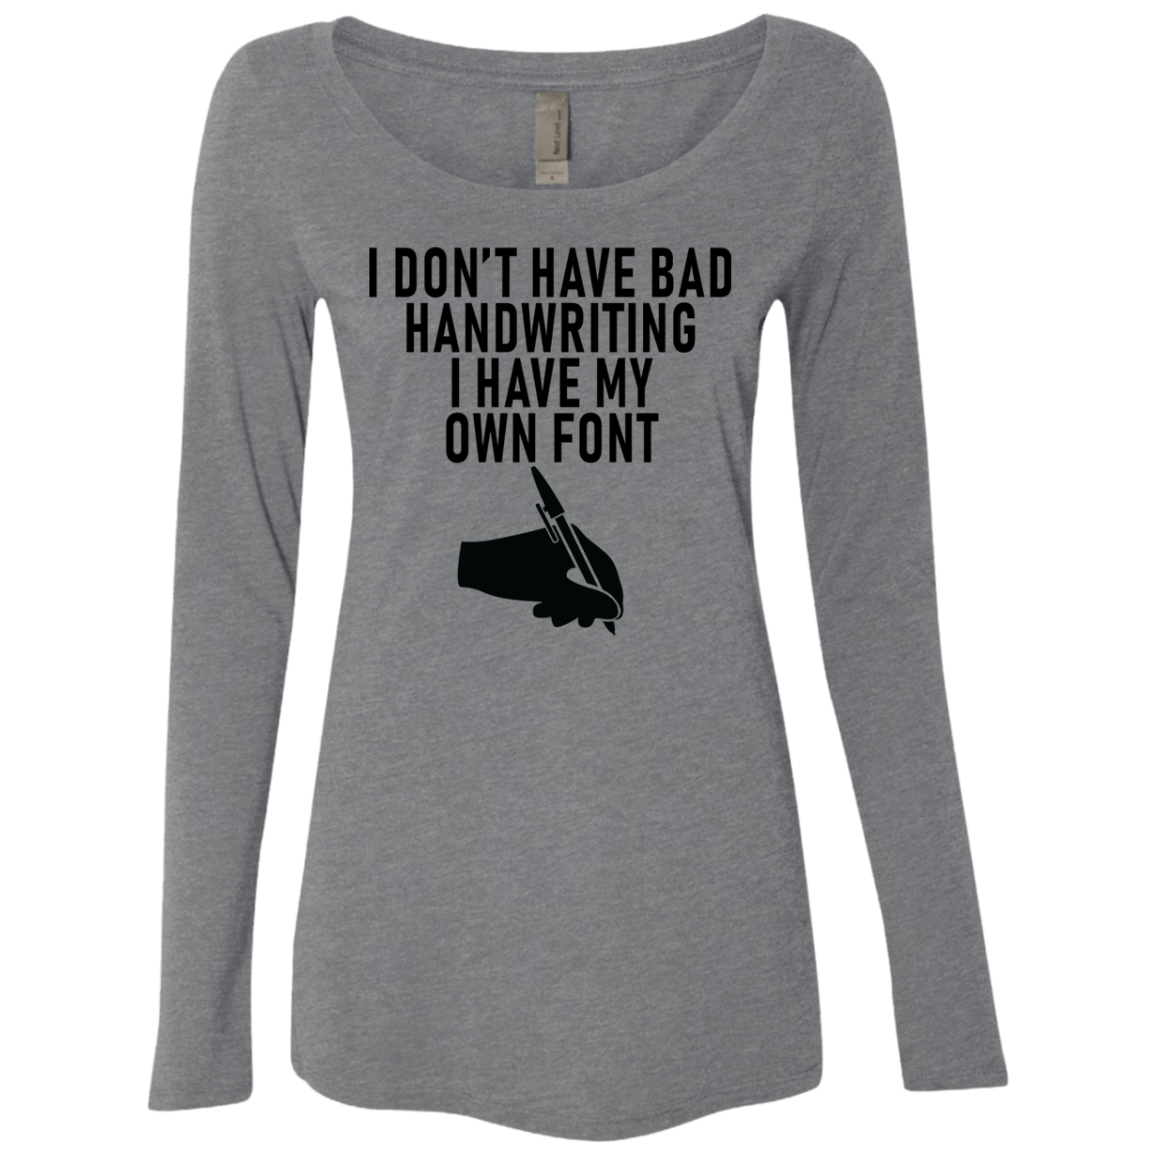 I Don't Have Bad Handwriting I Have My Own Font Women's Long Sleeve Tee